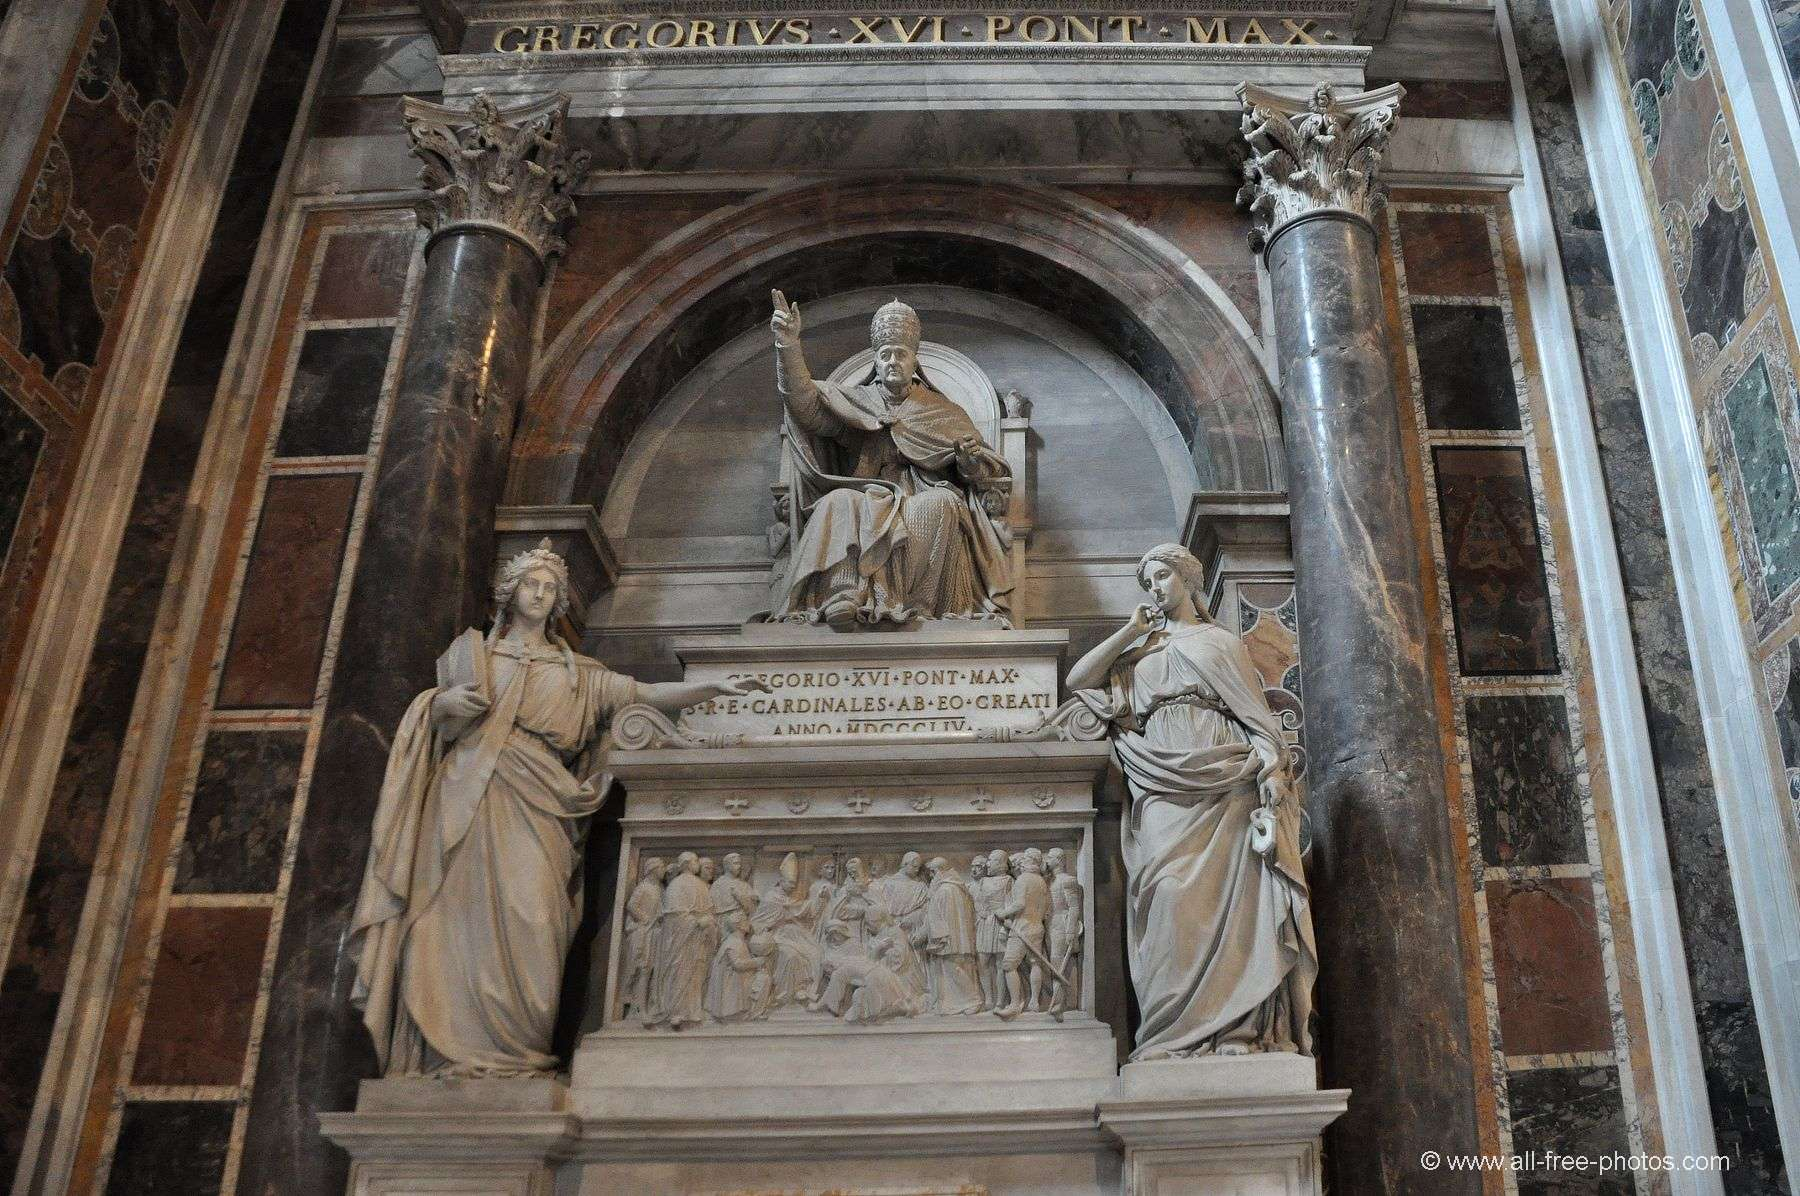 Pope Gregory XVI - St. Peter's Basilica - Vatican